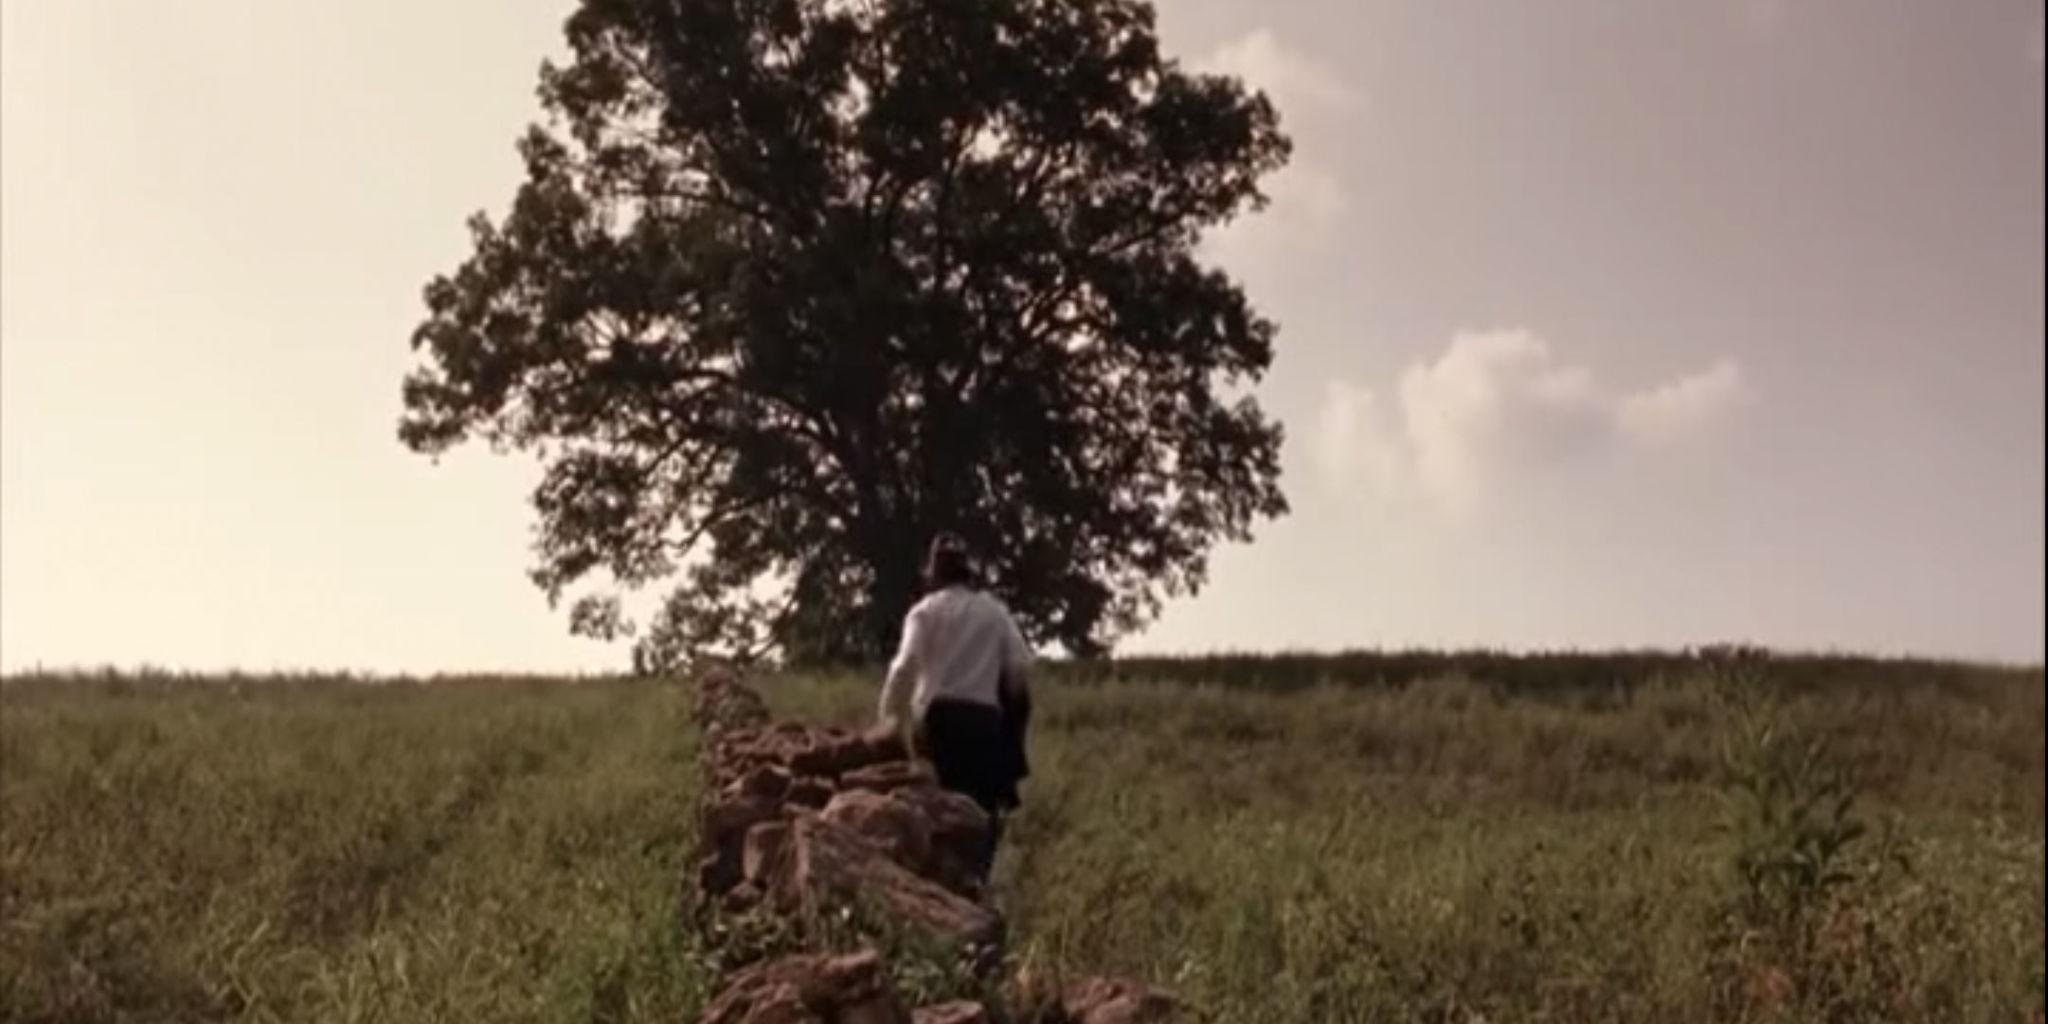 Shawshank Redemption Tree The Most Iconic Tree In Movie History Was Just Cut Down